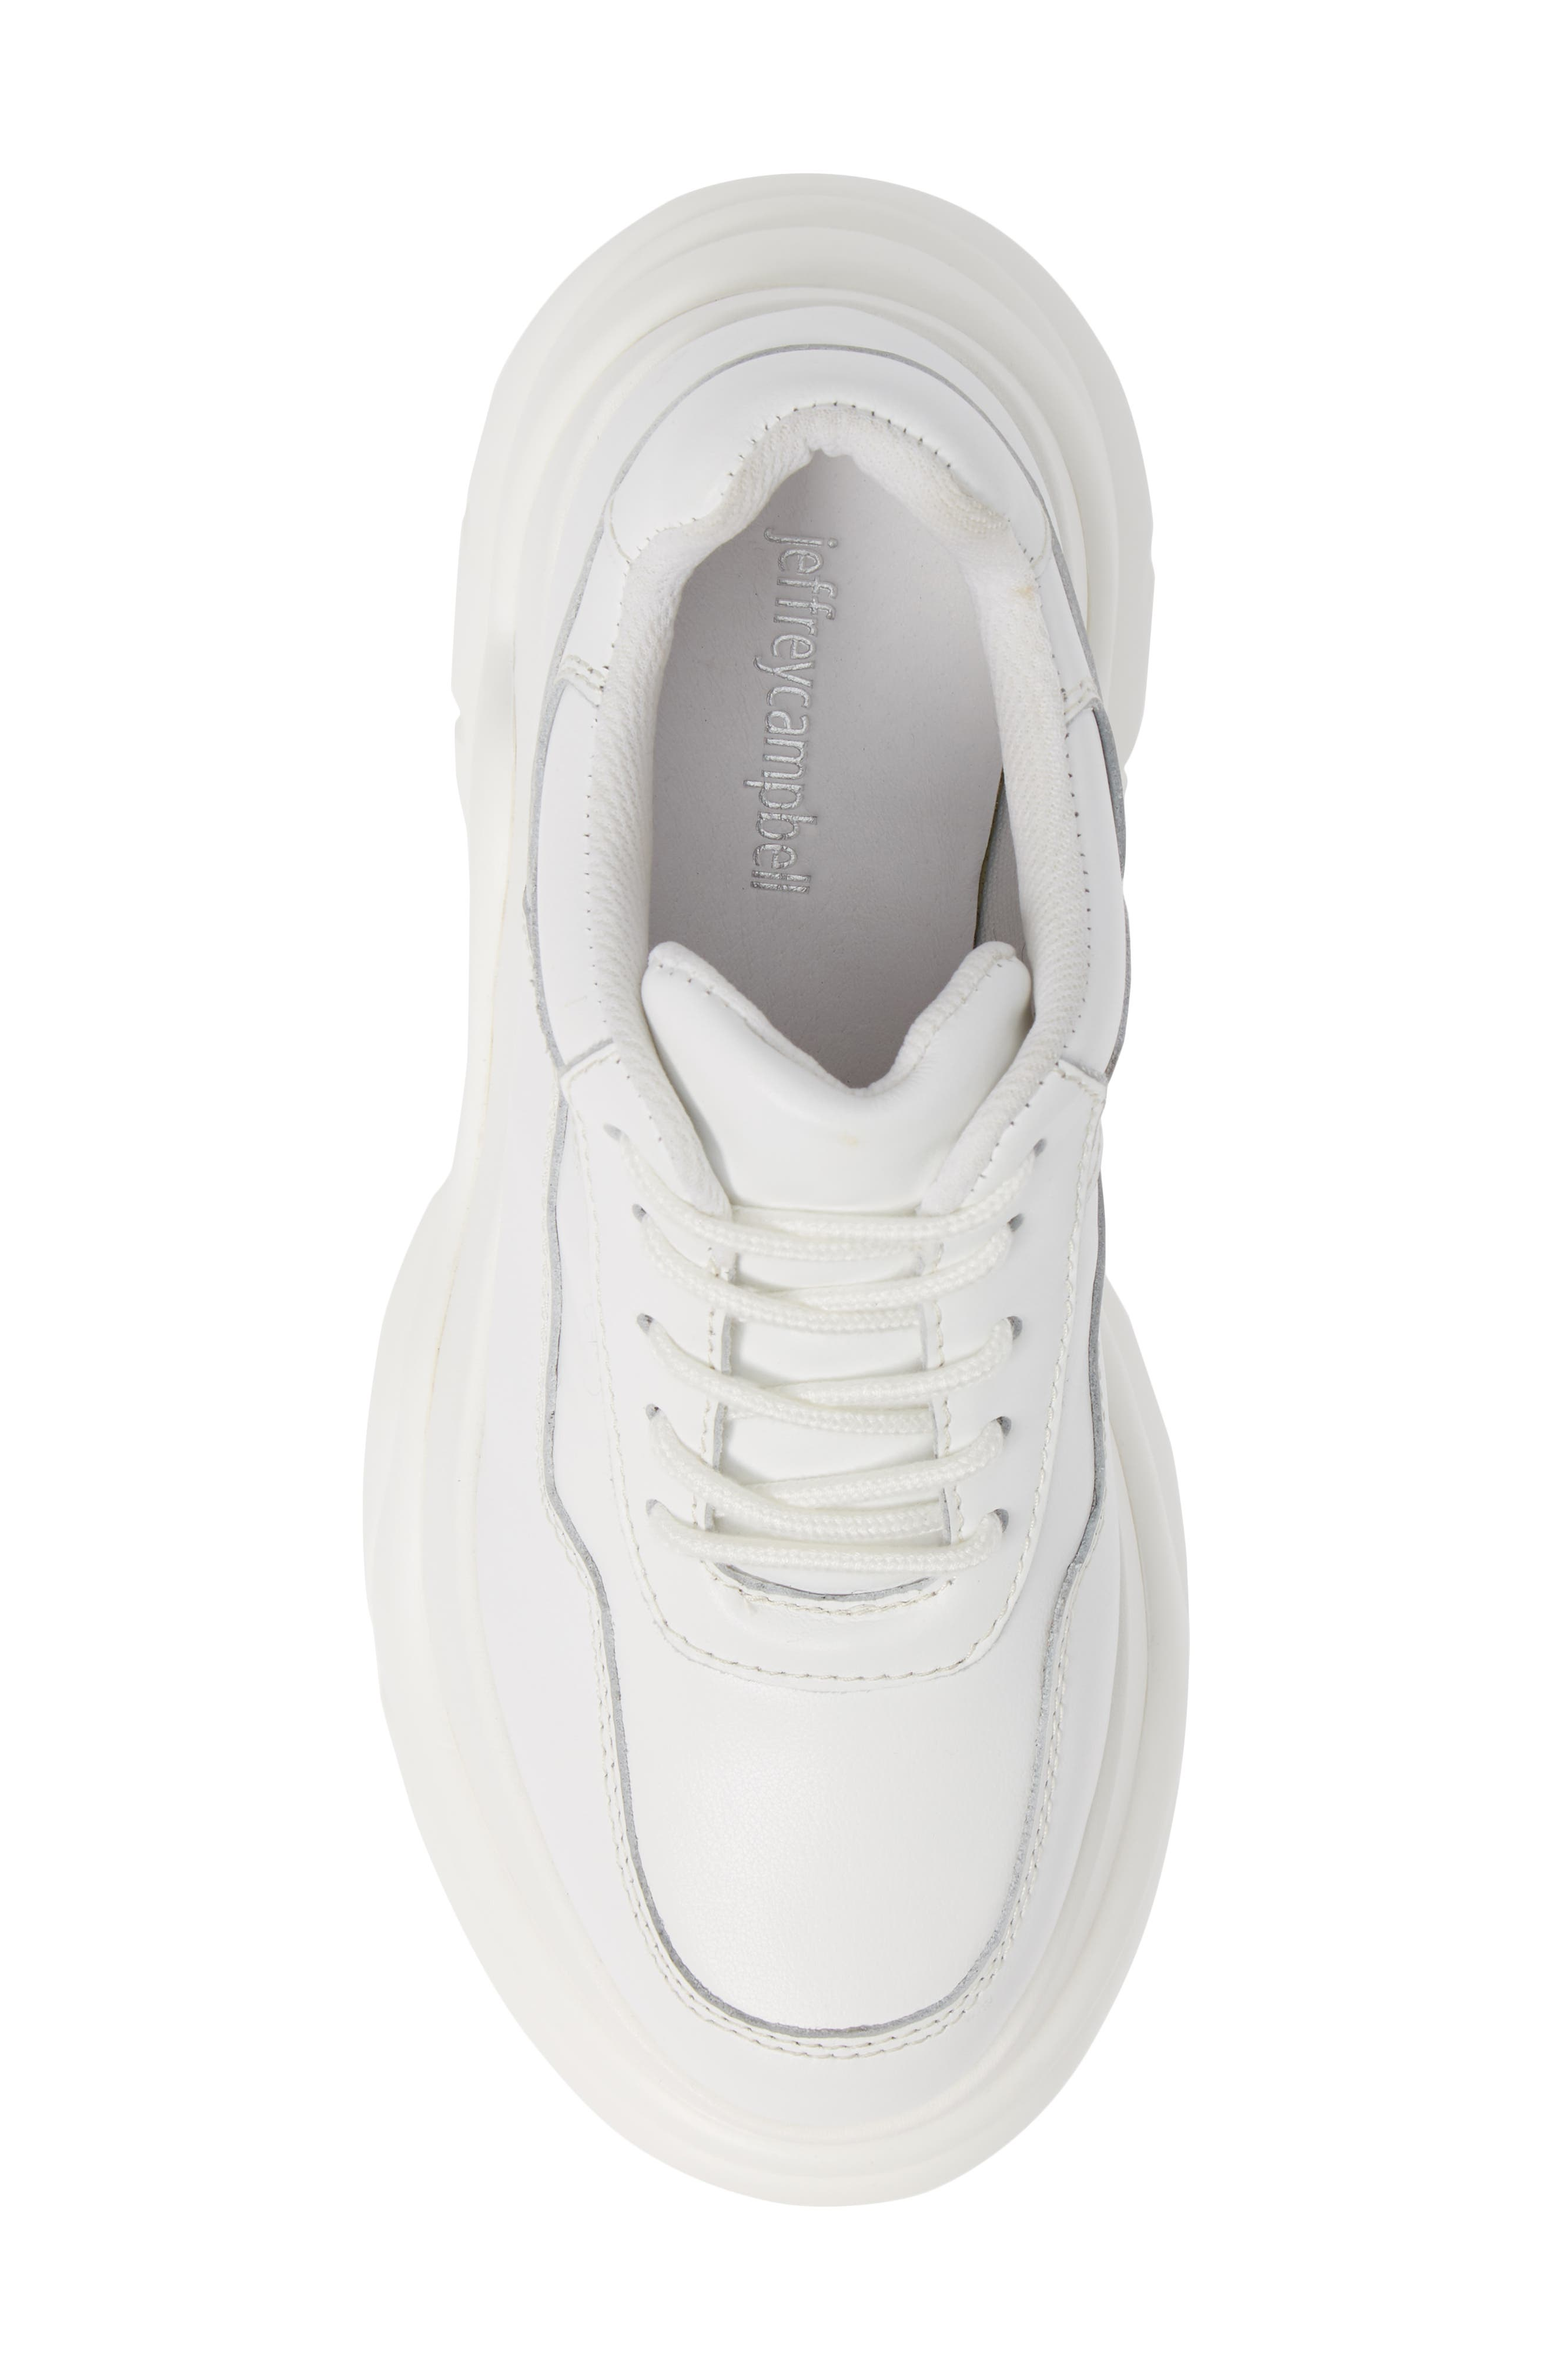 Most Def Wedge Sneaker,                             Alternate thumbnail 5, color,                             WHITE/ WHITE LEATHER